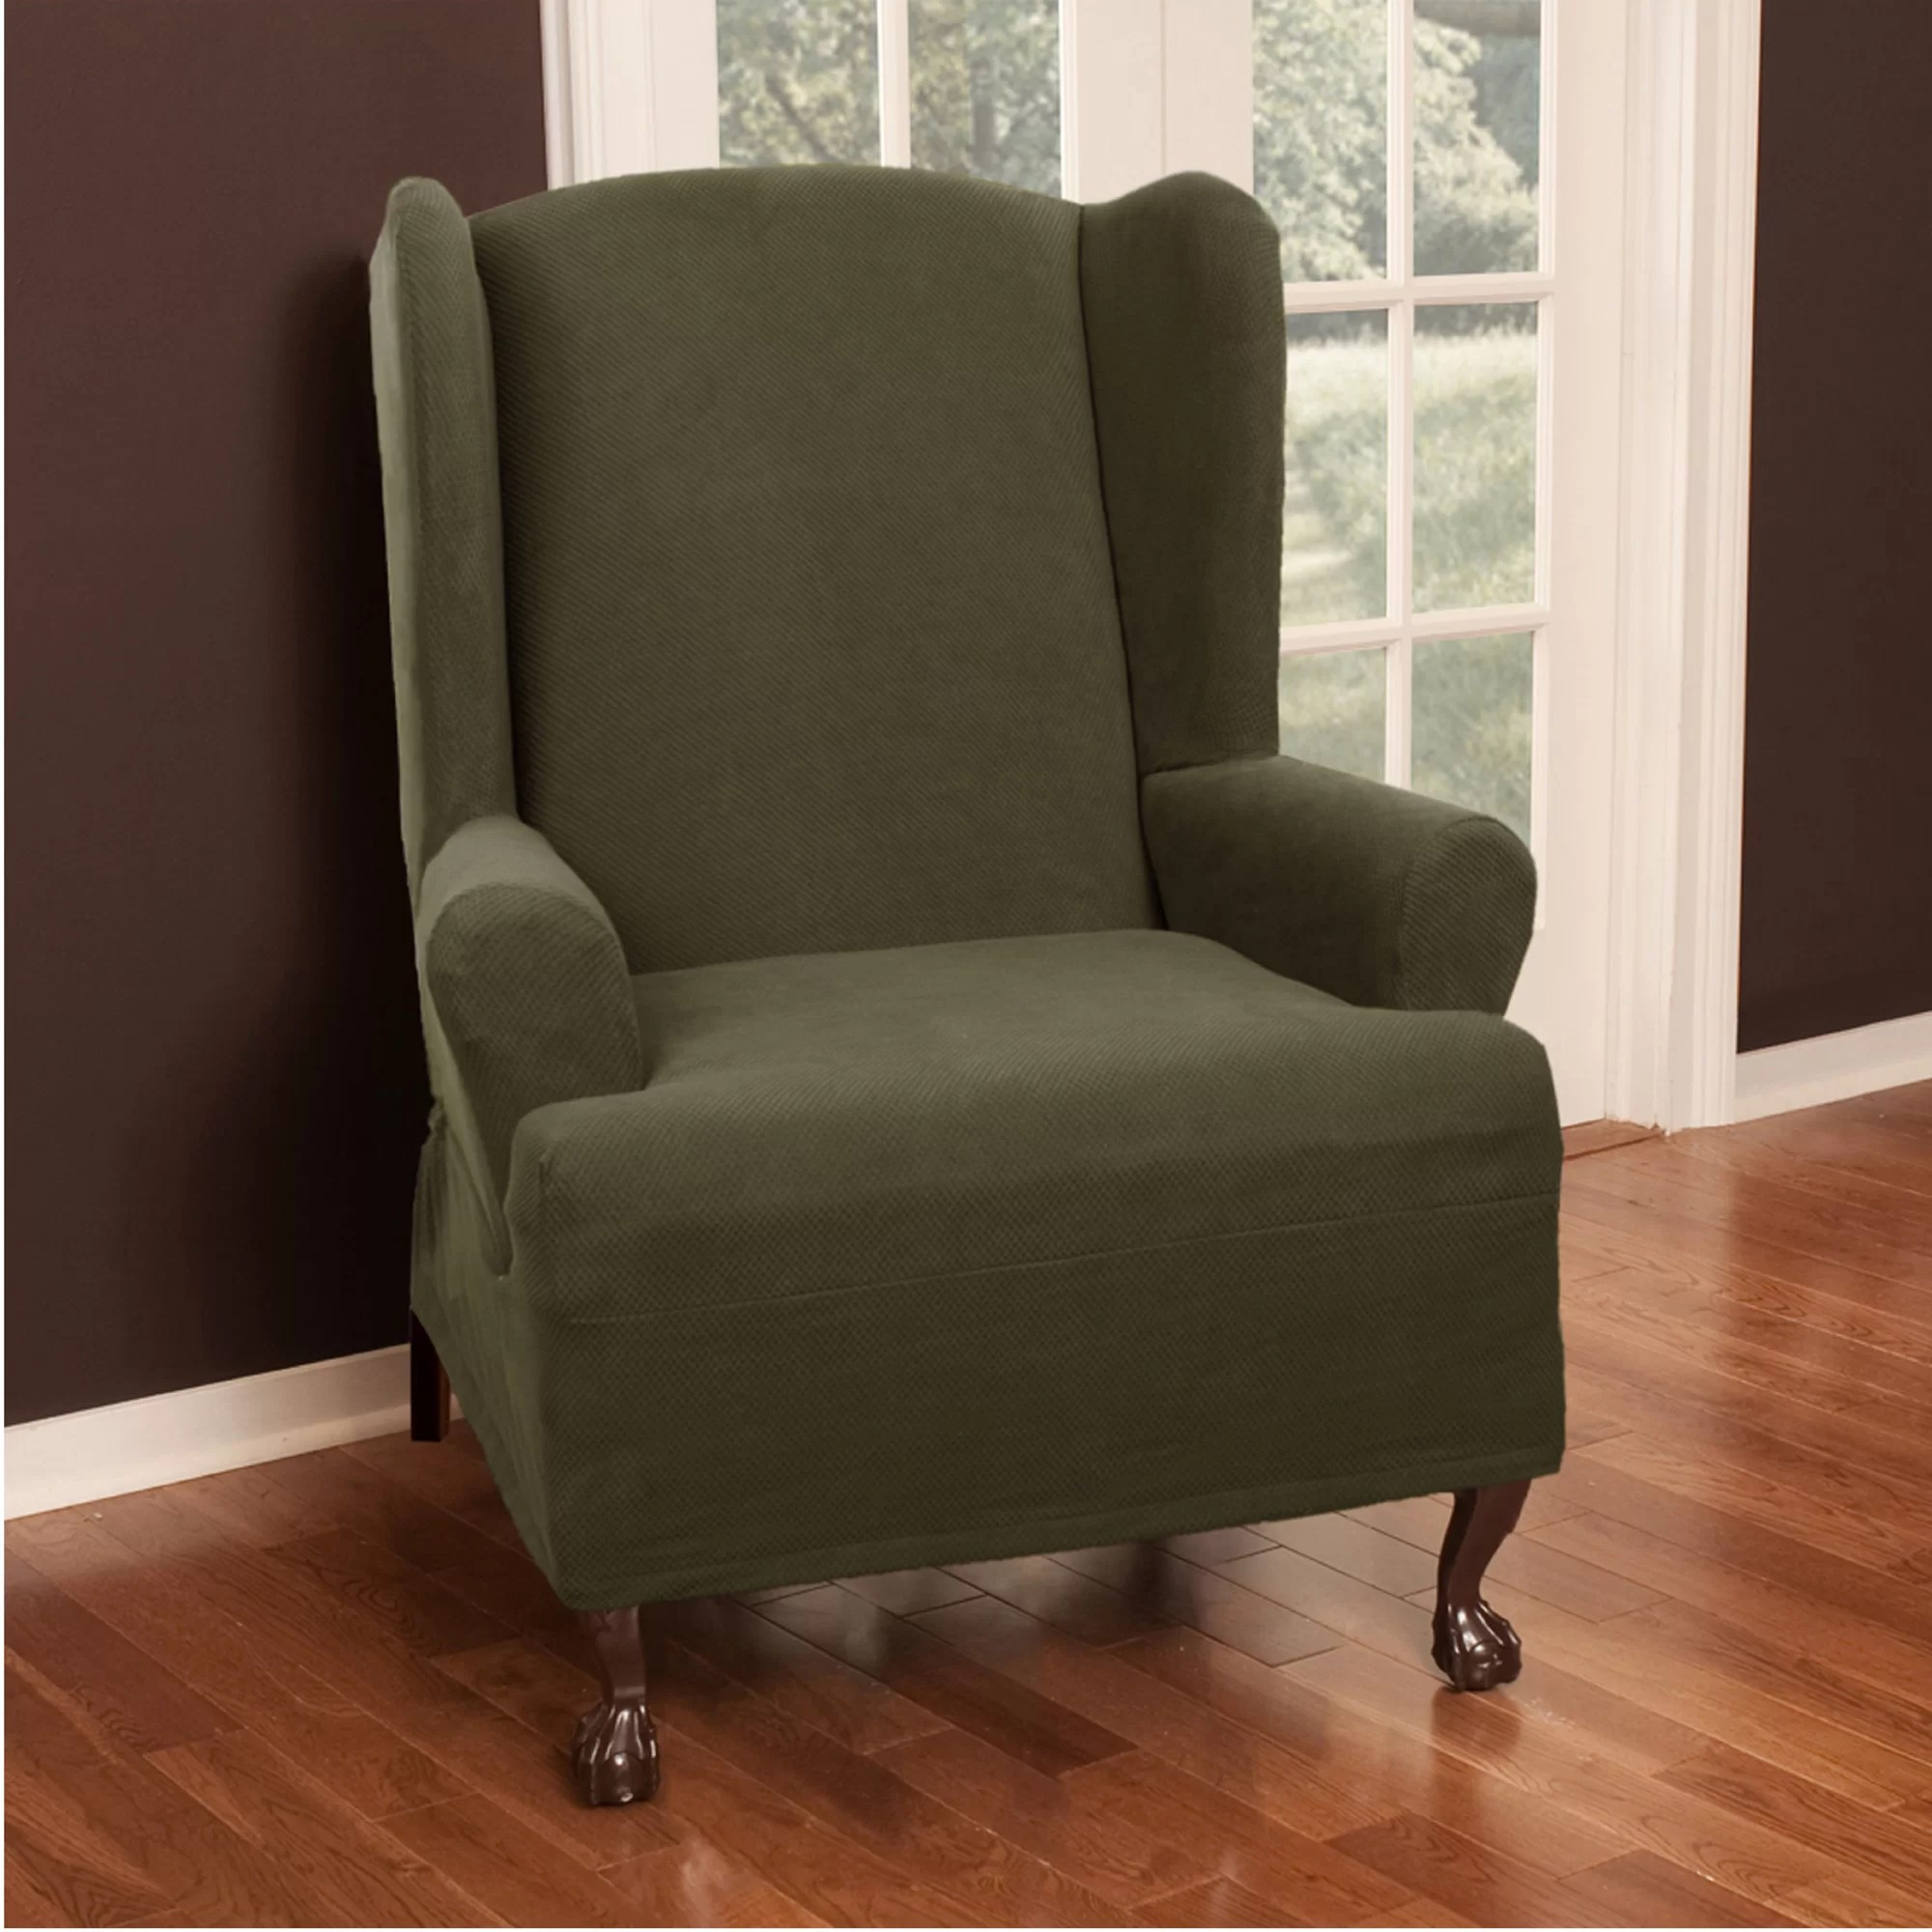 chair cover rentals dc dental electrical requirements slipcovers for chairs with t cushion desk amazon high 3 in 1 view larger